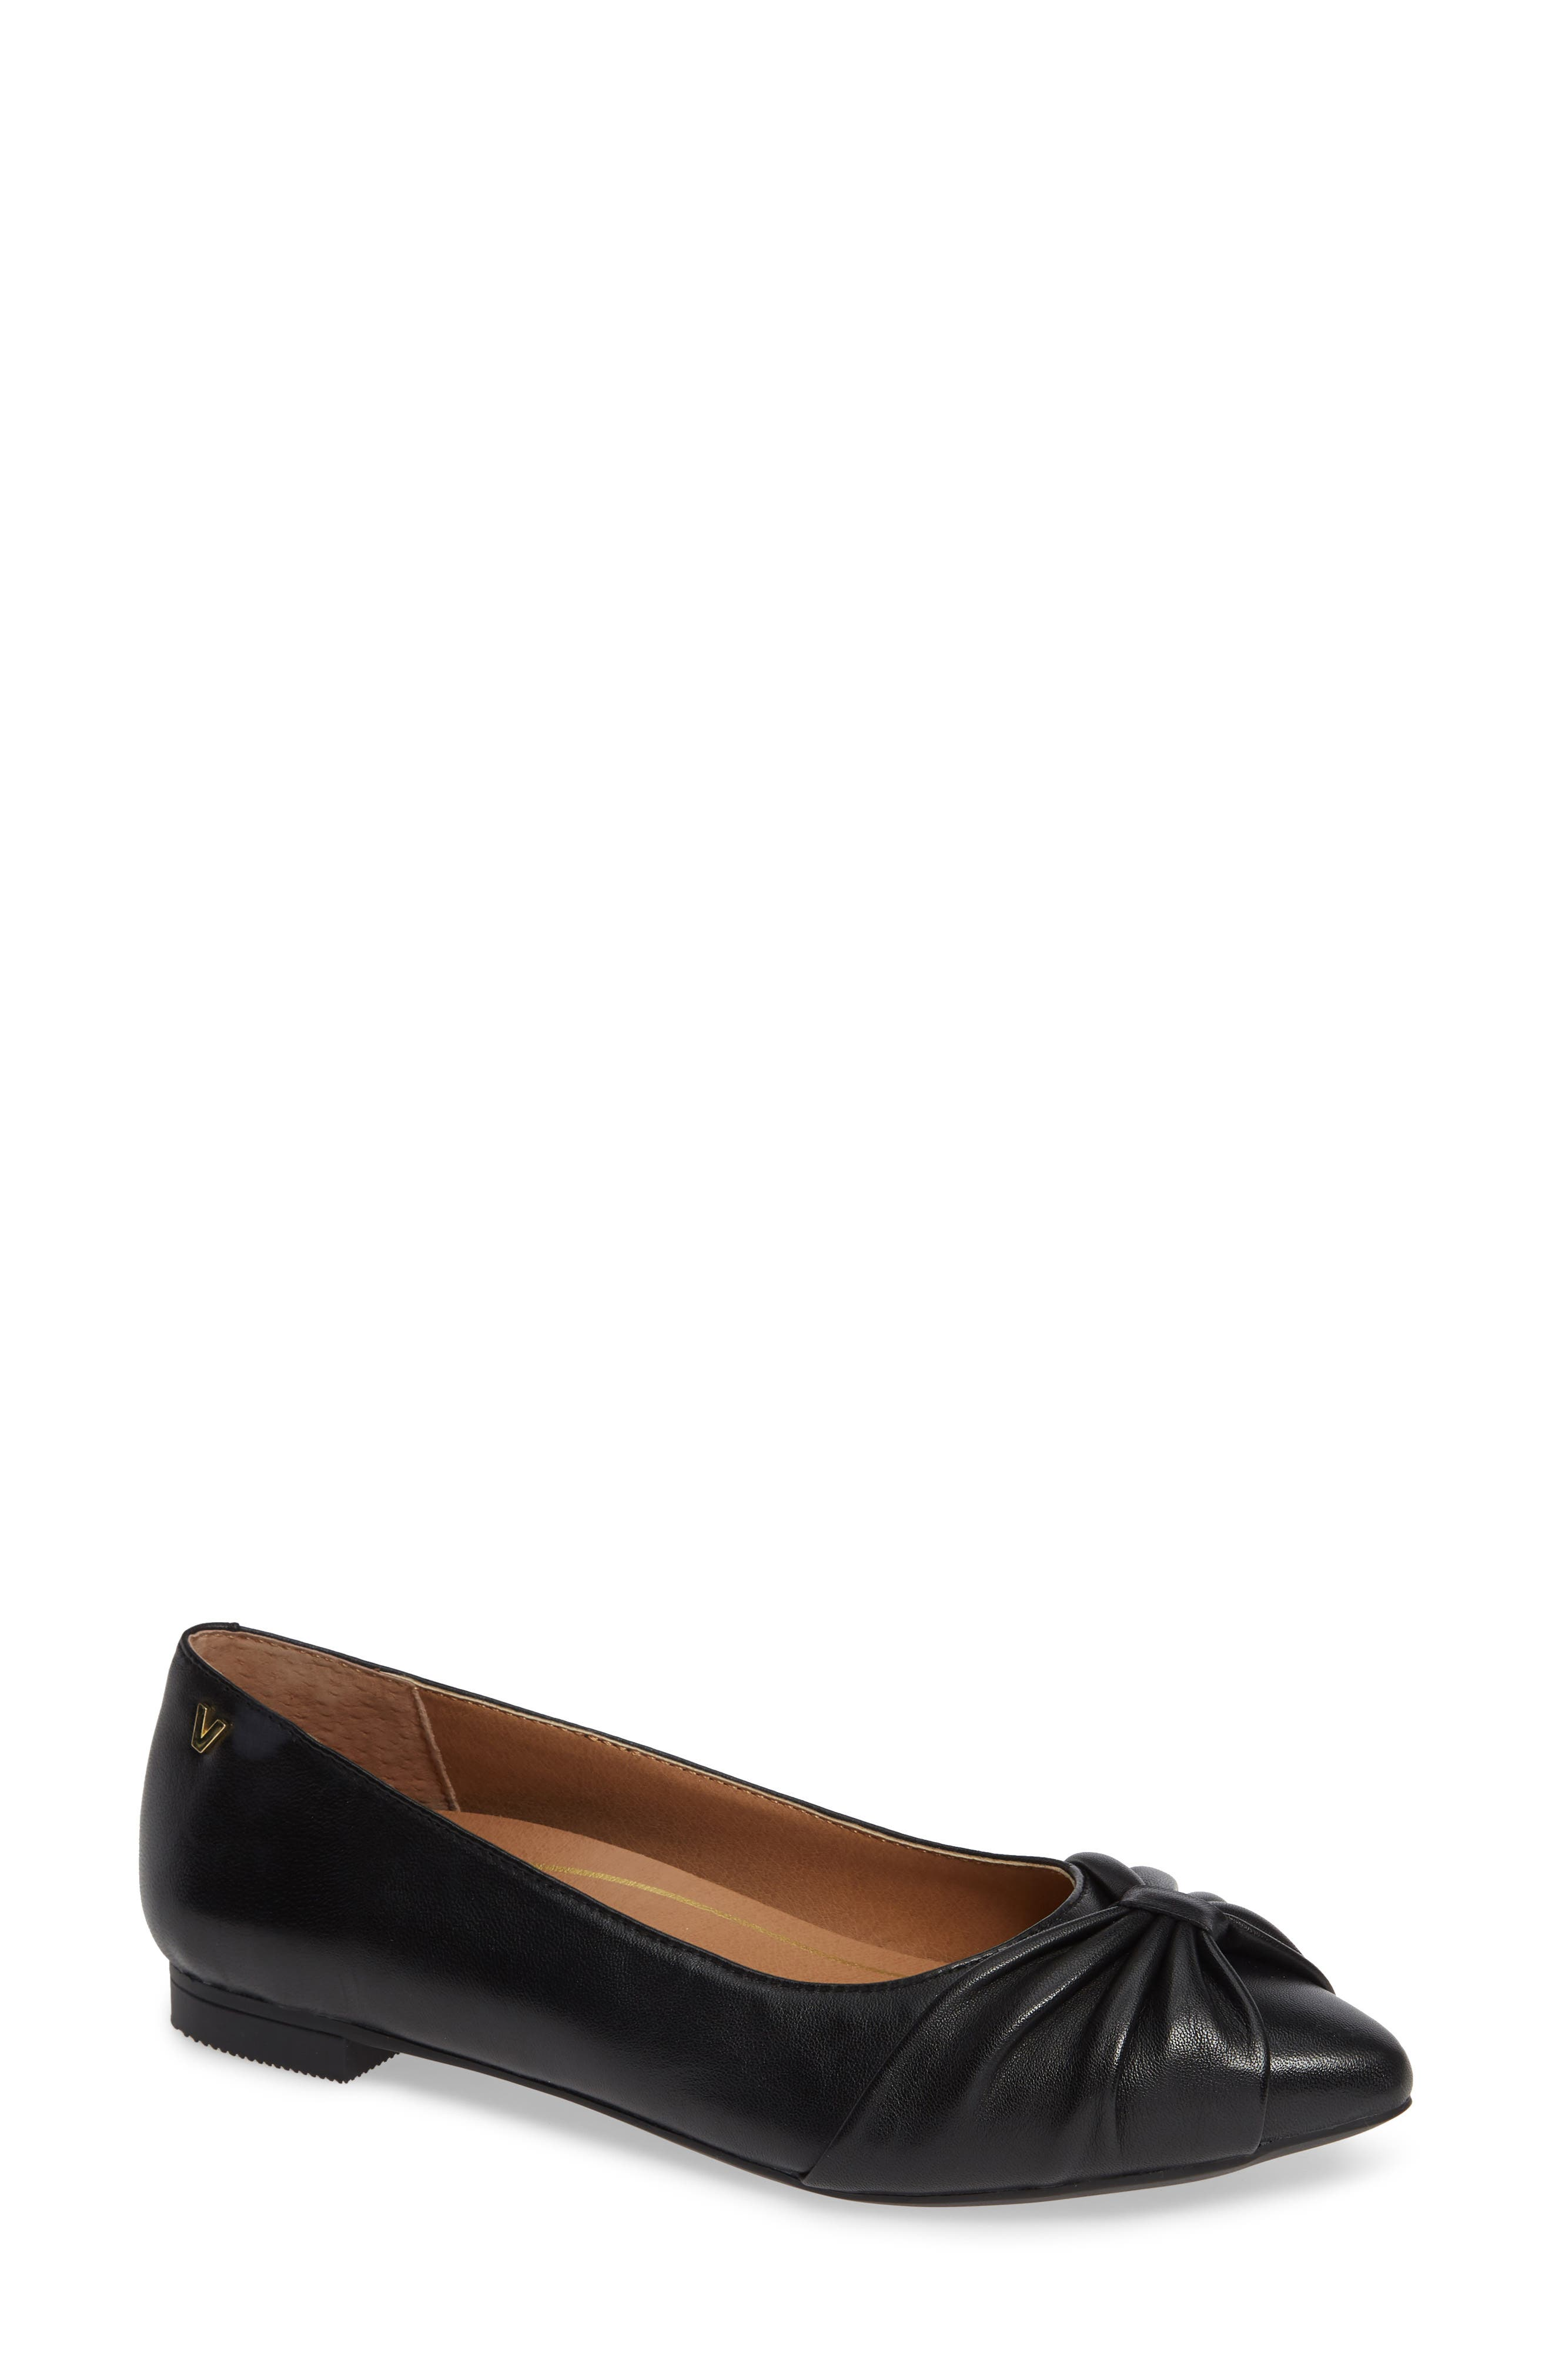 Gramercy Pointy Toe Flat,                             Main thumbnail 1, color,                             BLACK/ BLACK LEATHER